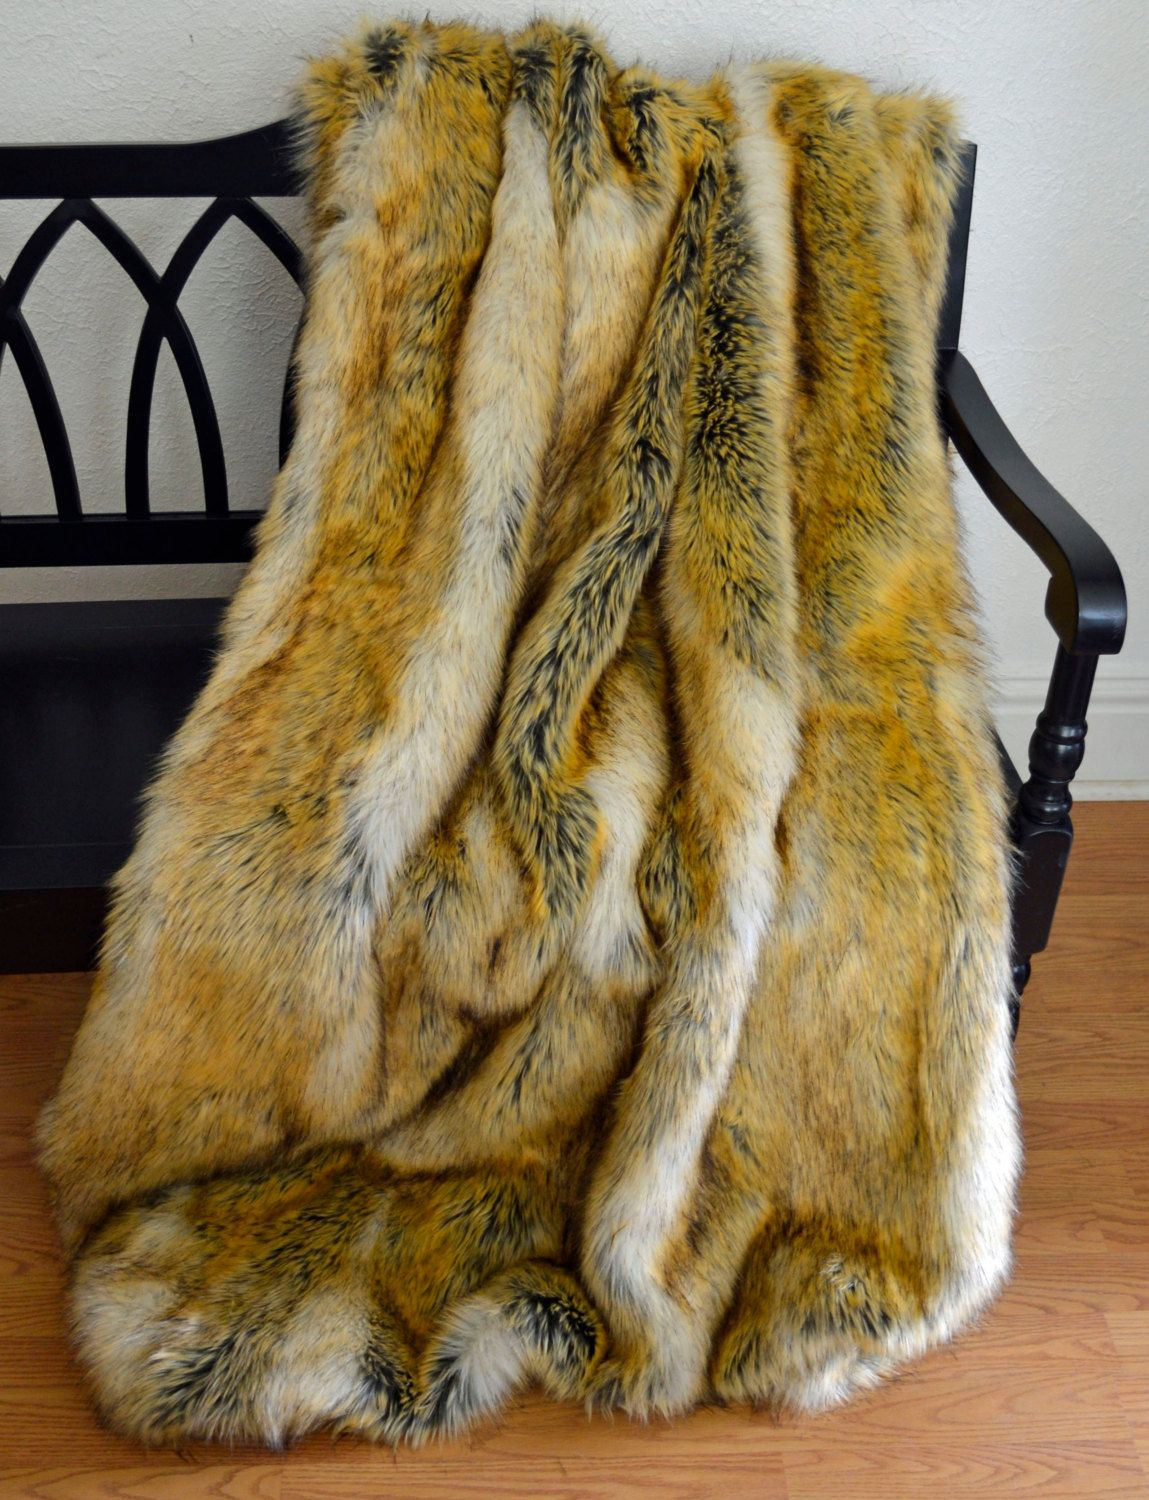 Faux Fur Throw Blanket Coyote Faux Fur Fur Bedding Blanket Throw (179.00 USD) by CindyHeitkampDesigns